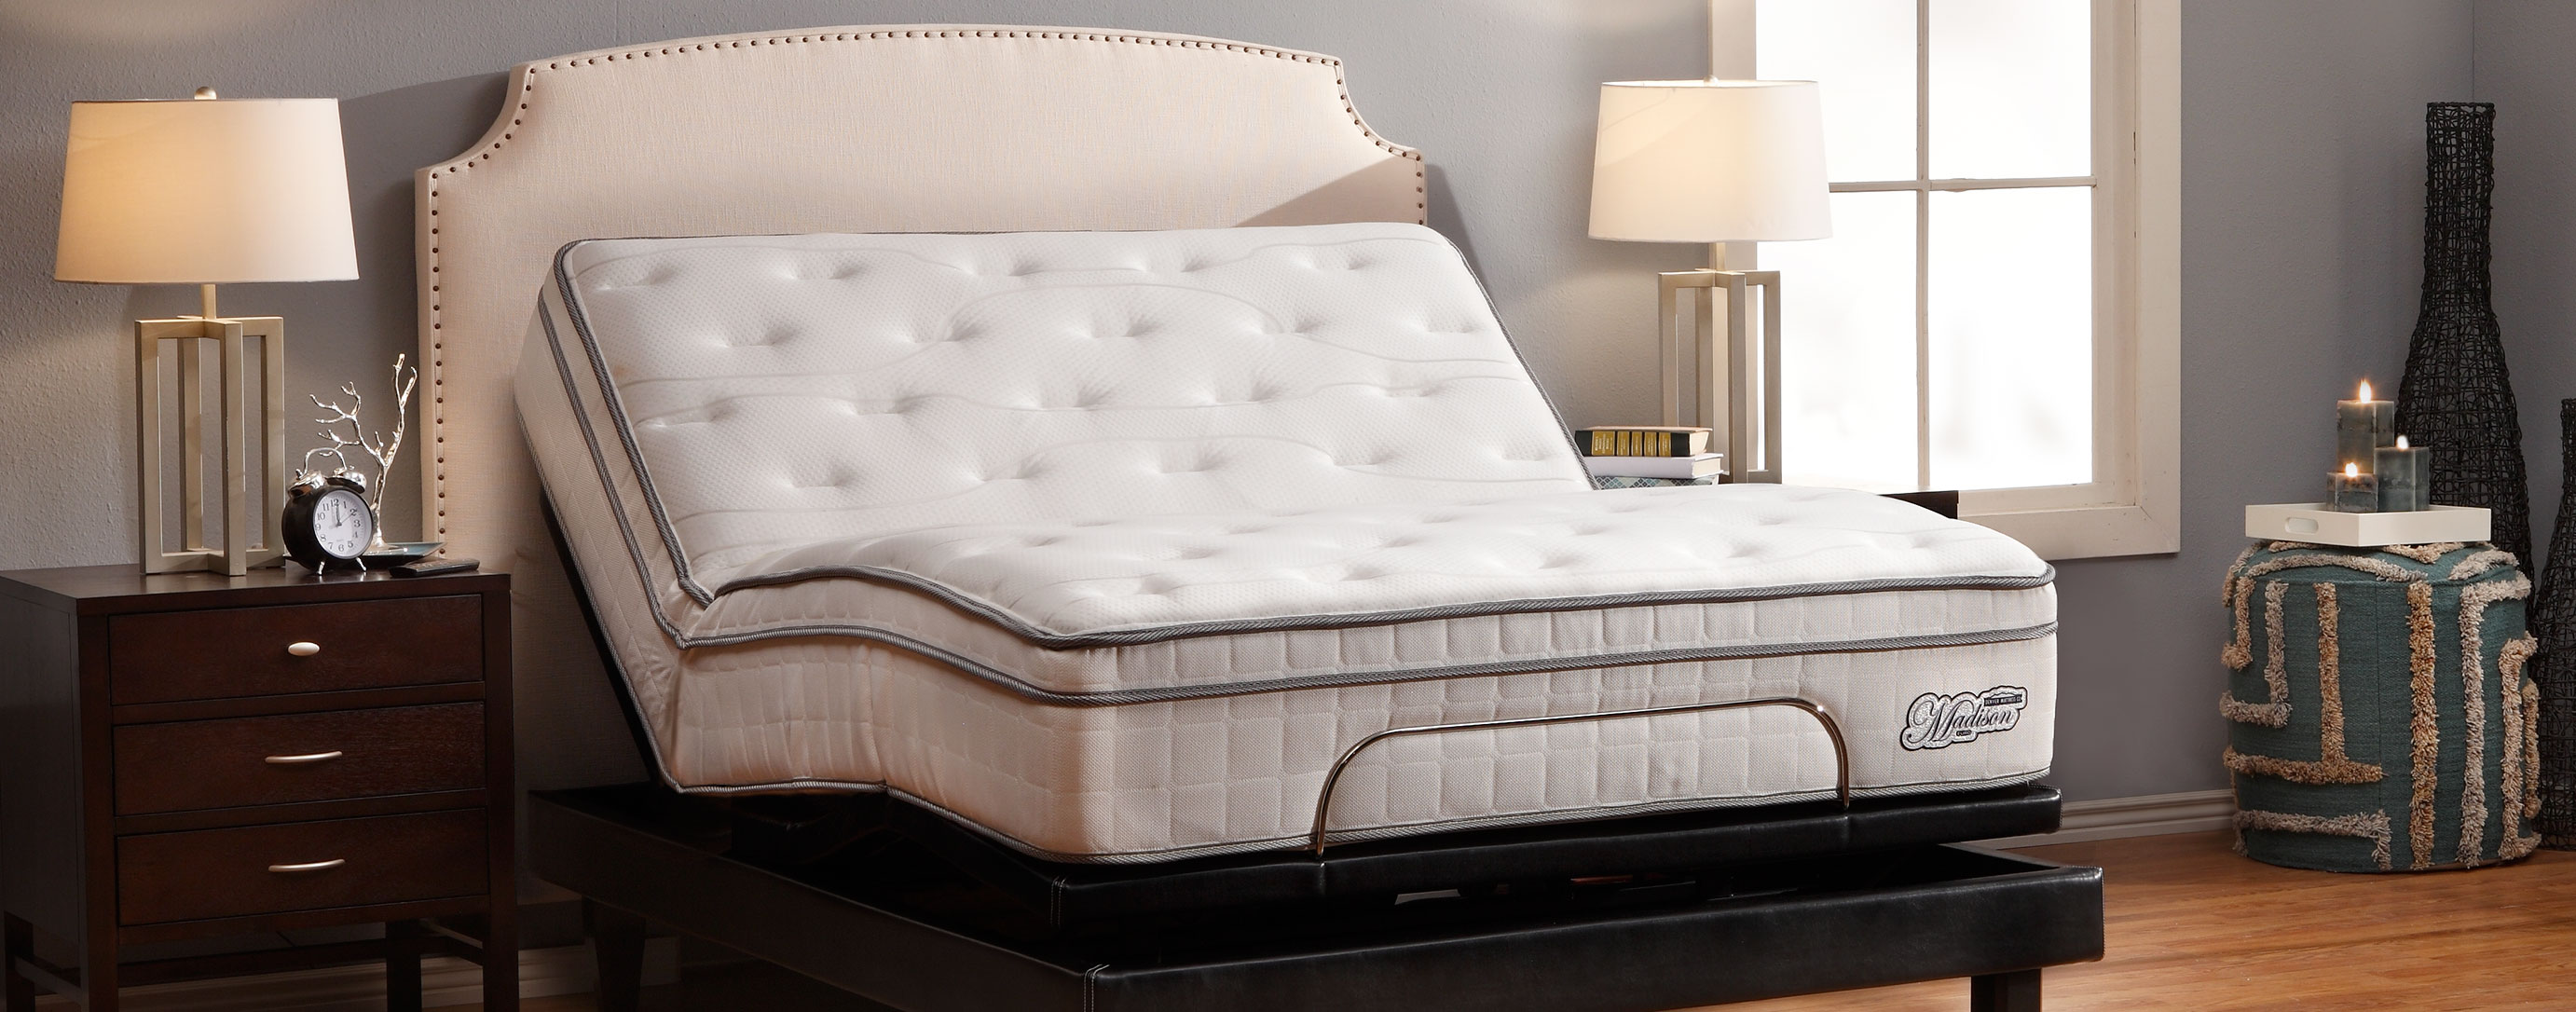 Denver Mattress Reviews And buying Guide by www.snoremagazine.com